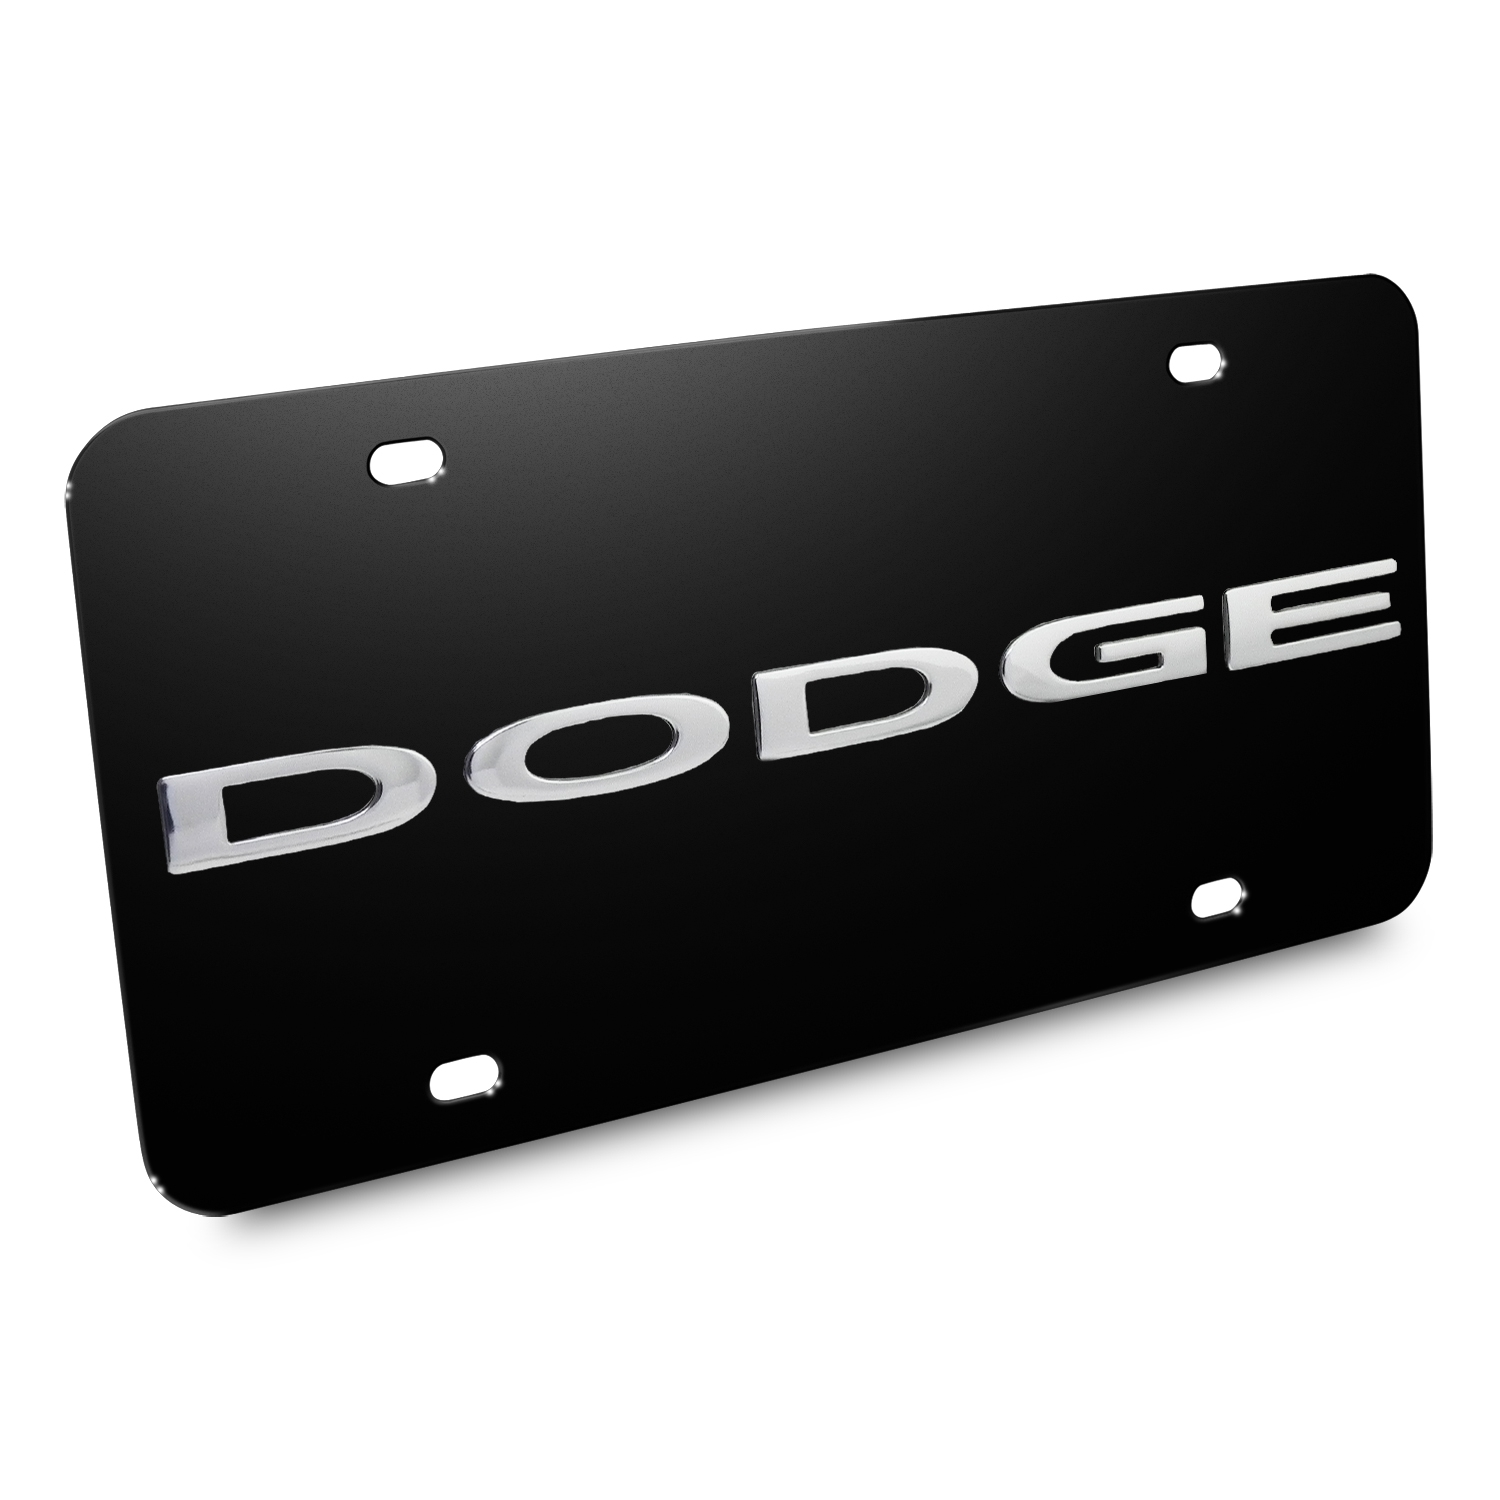 Dodge Nameplate/Trucks 3D Logo Black Stainless Steel License Plate